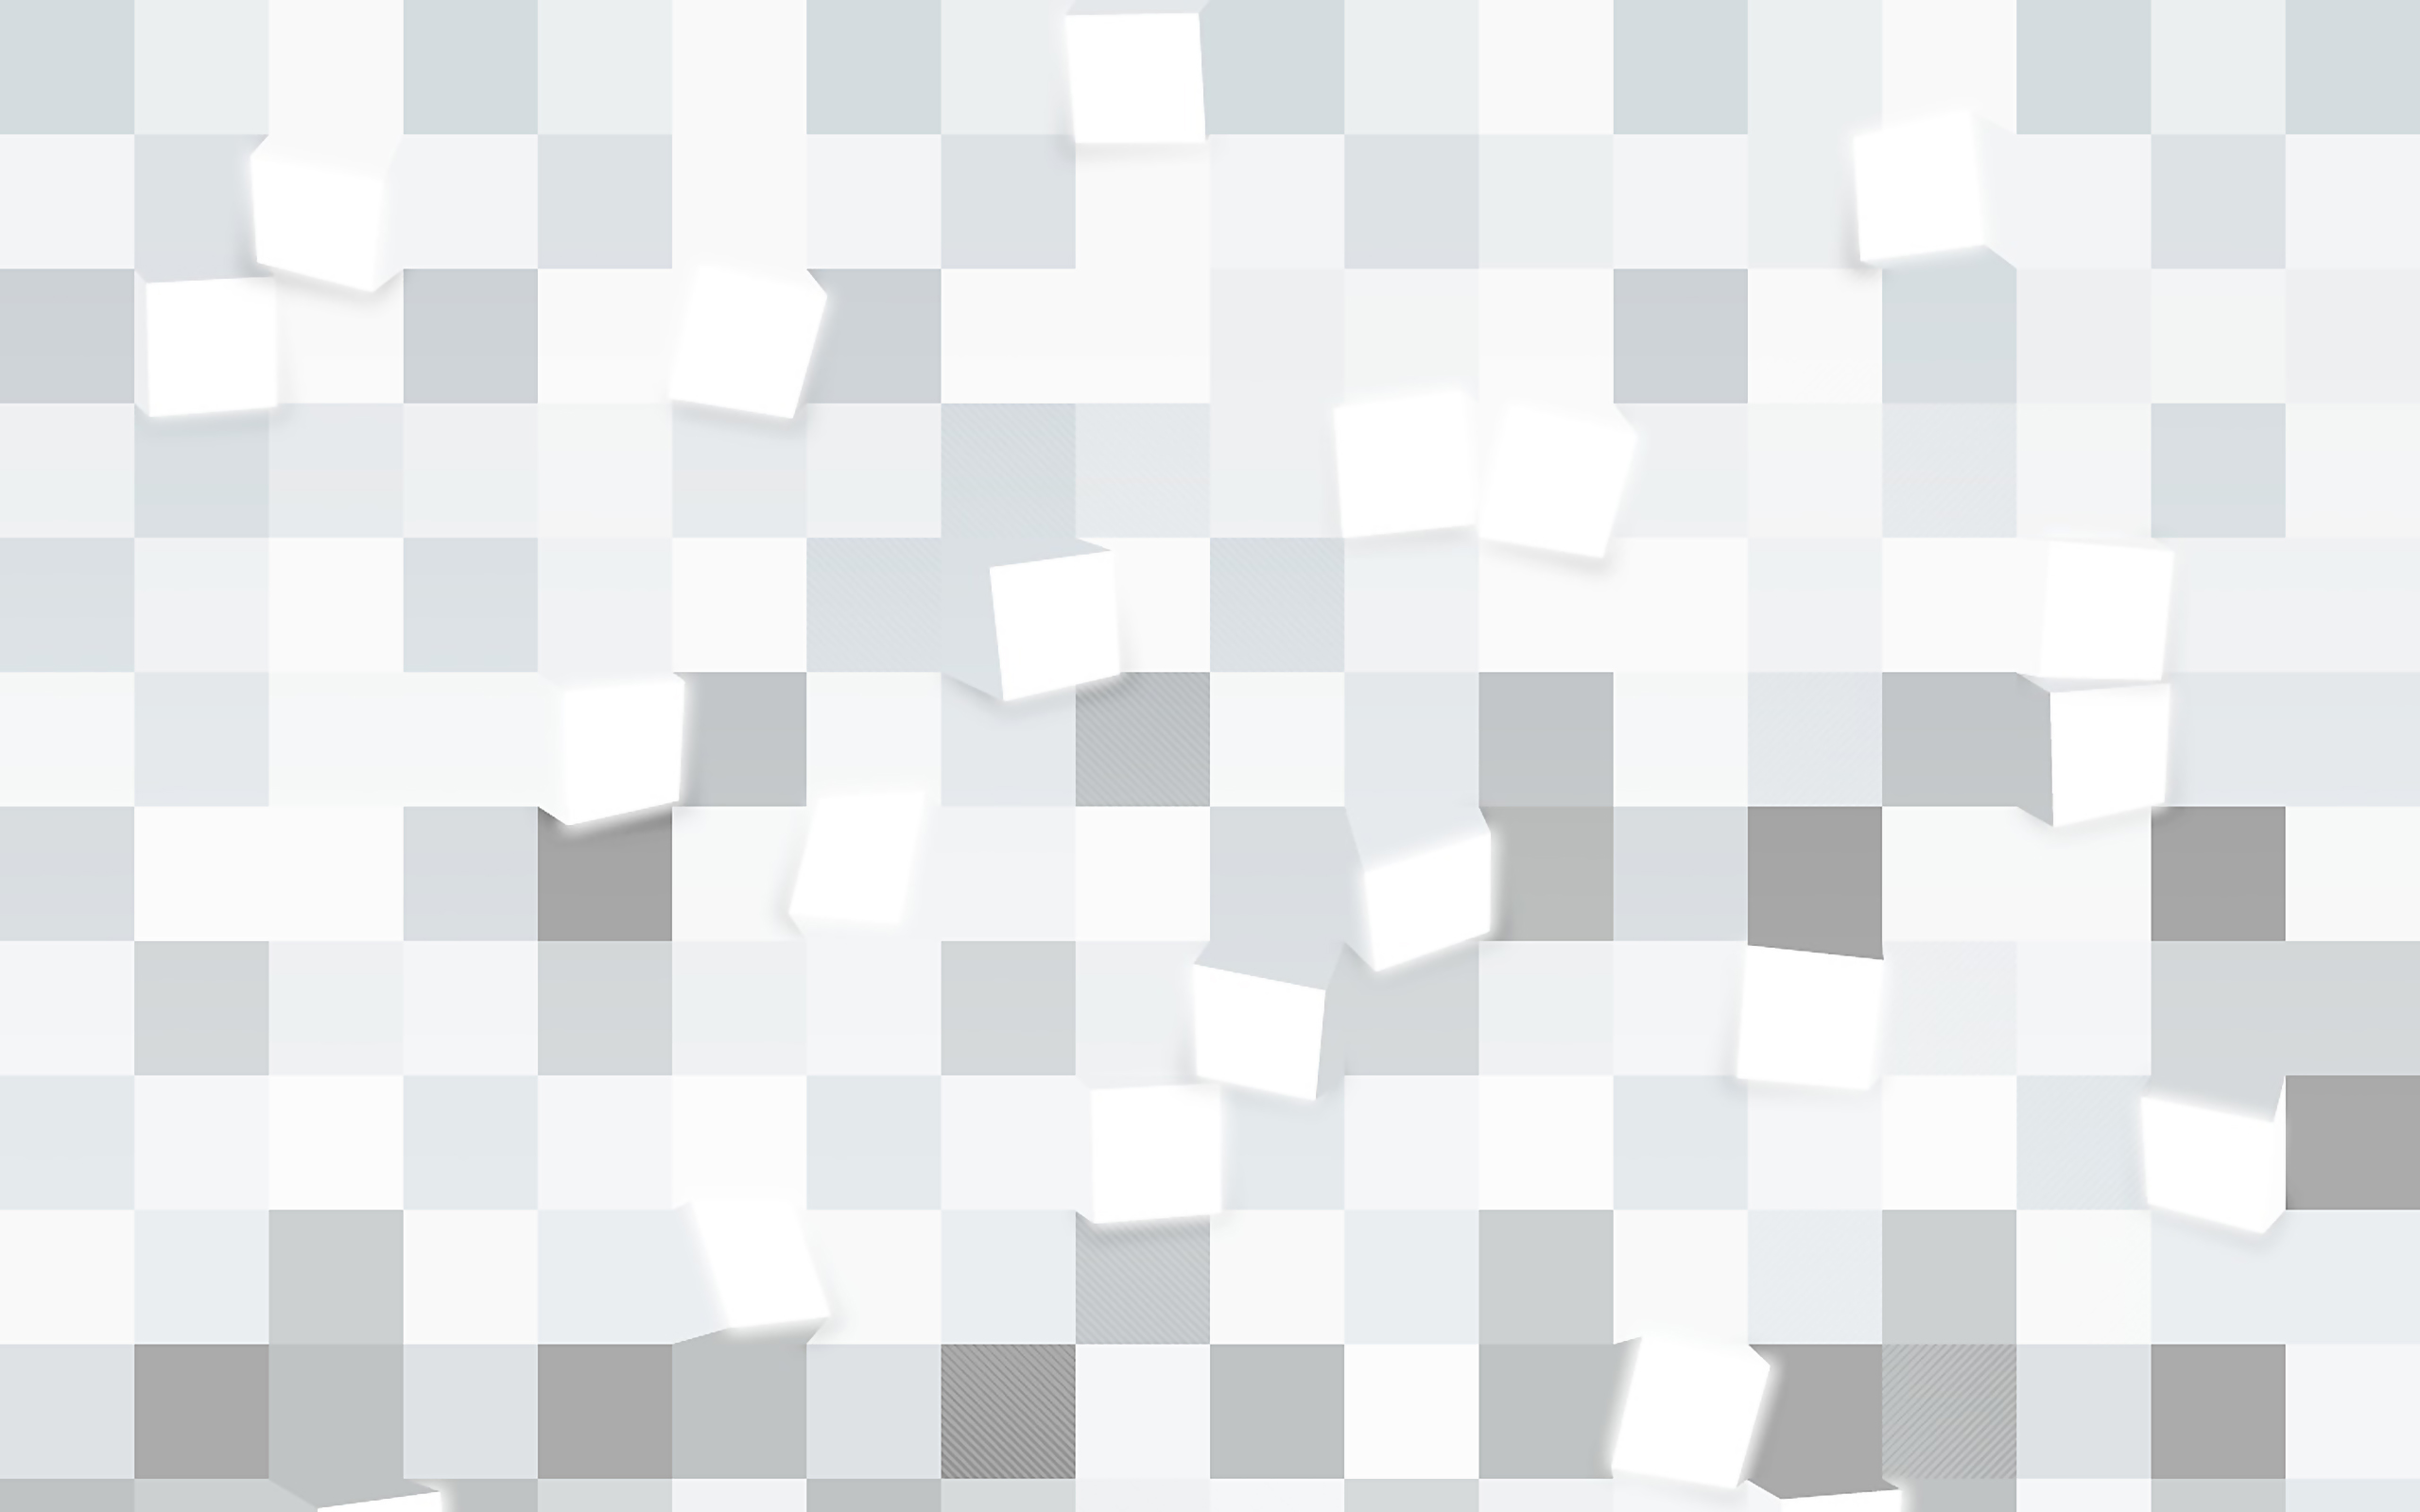 white abstract wallpaper 47836 2560x1600 px hdwallsourcecom